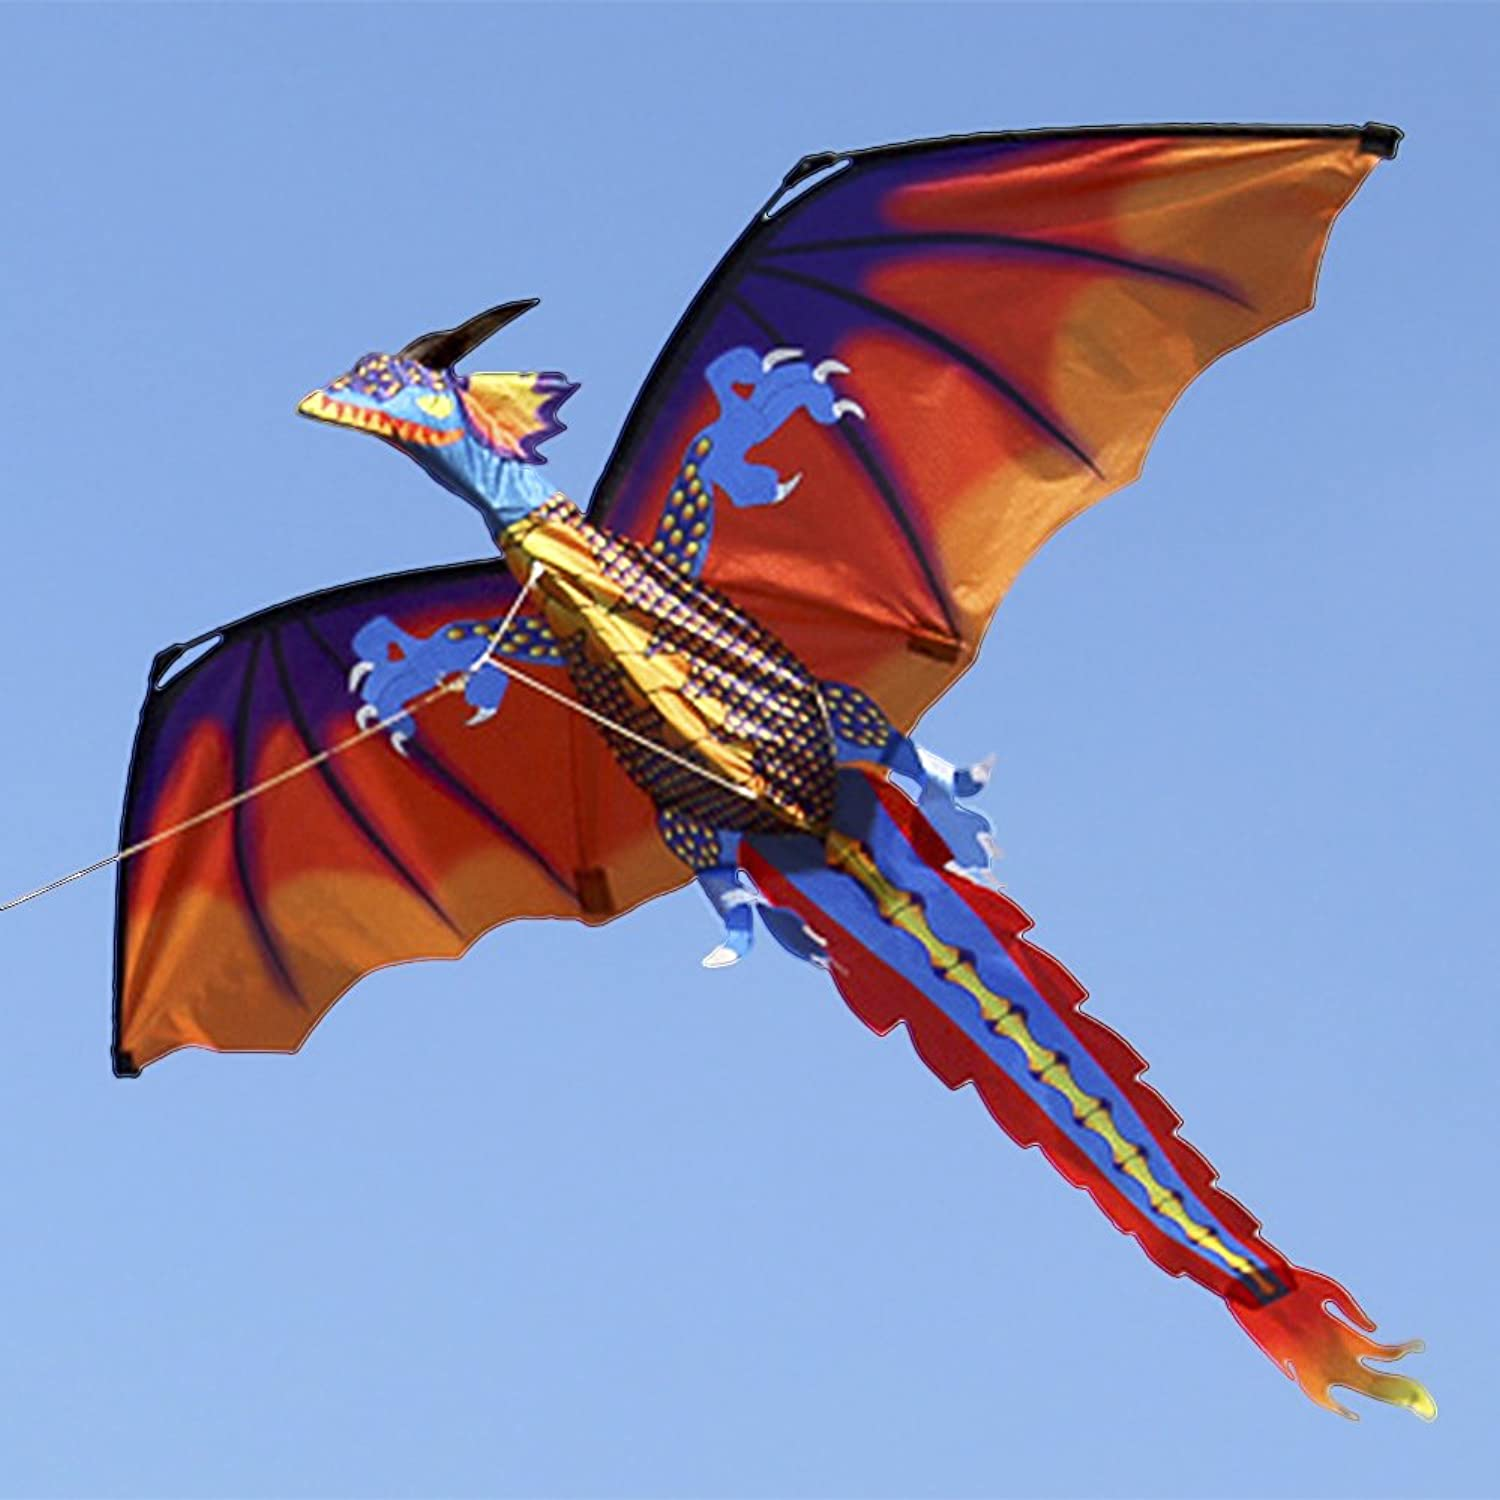 140cx120cm Classical Dragon Kite Single Line with Tail with Handle and Line Good Flying Kites From Hengda Toys